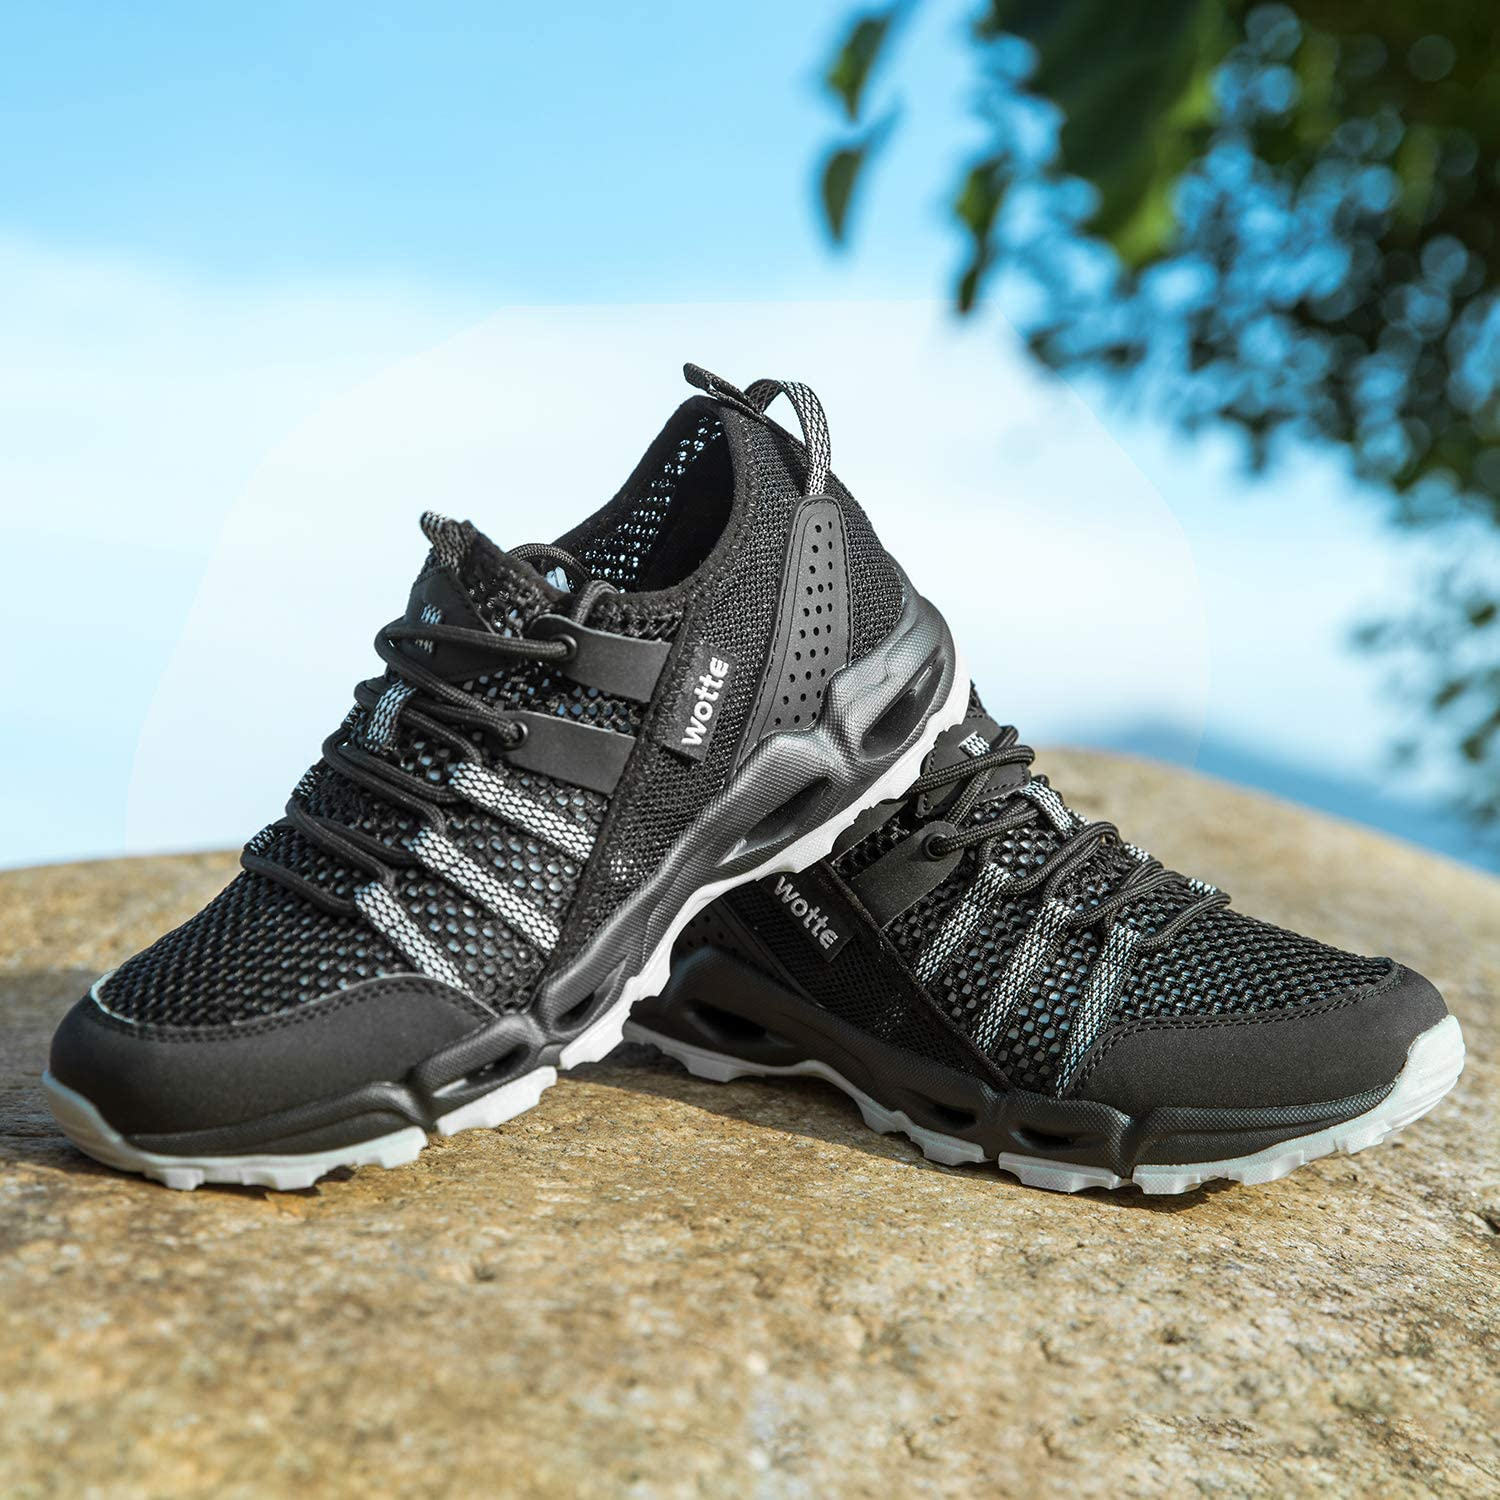 Quick Dry Breathable Textile Mesh Athletic Outdoor Sneakers Size 6-13 MAINCH Womens Hiking Water Shoes